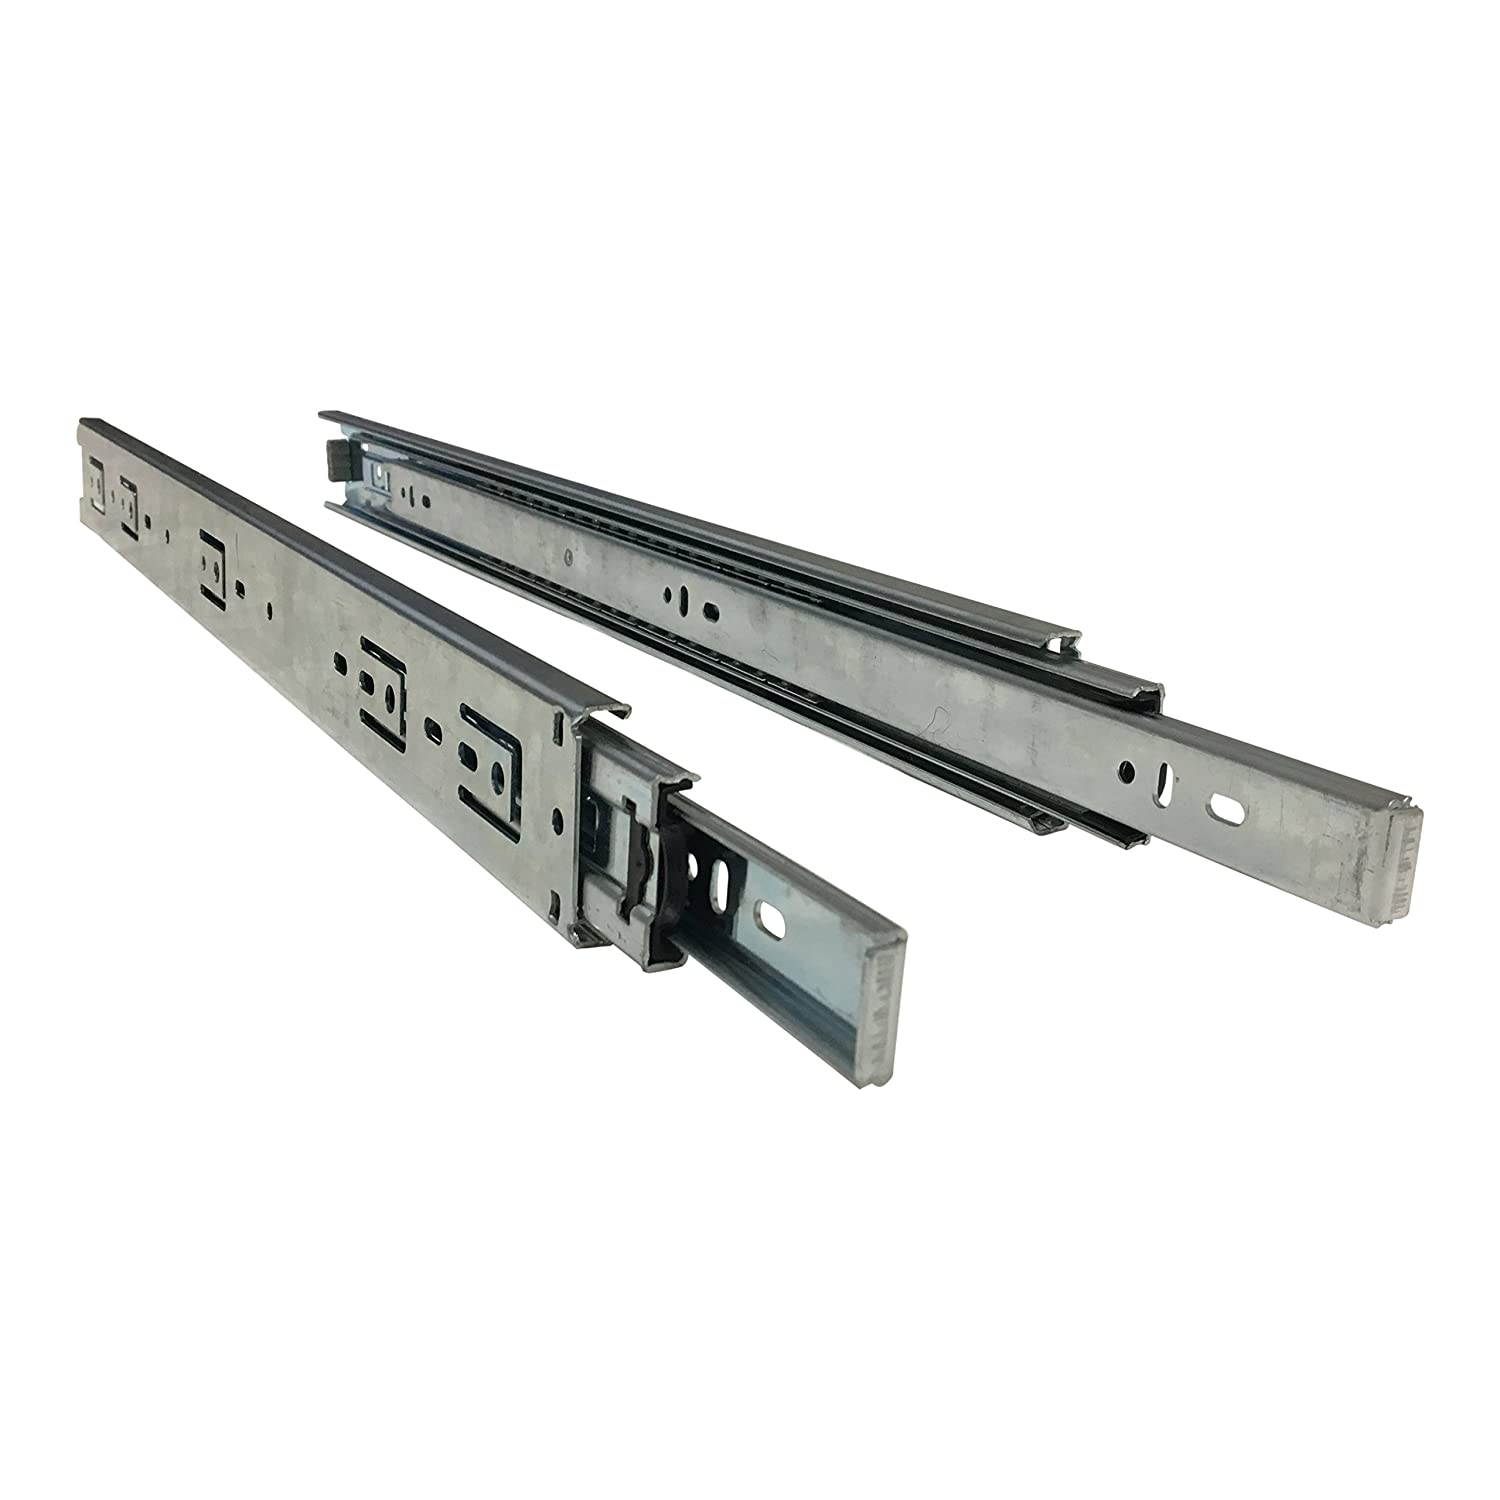 30 Firgelli Automations Full Extension Drawer Slides 400 lb Capacity